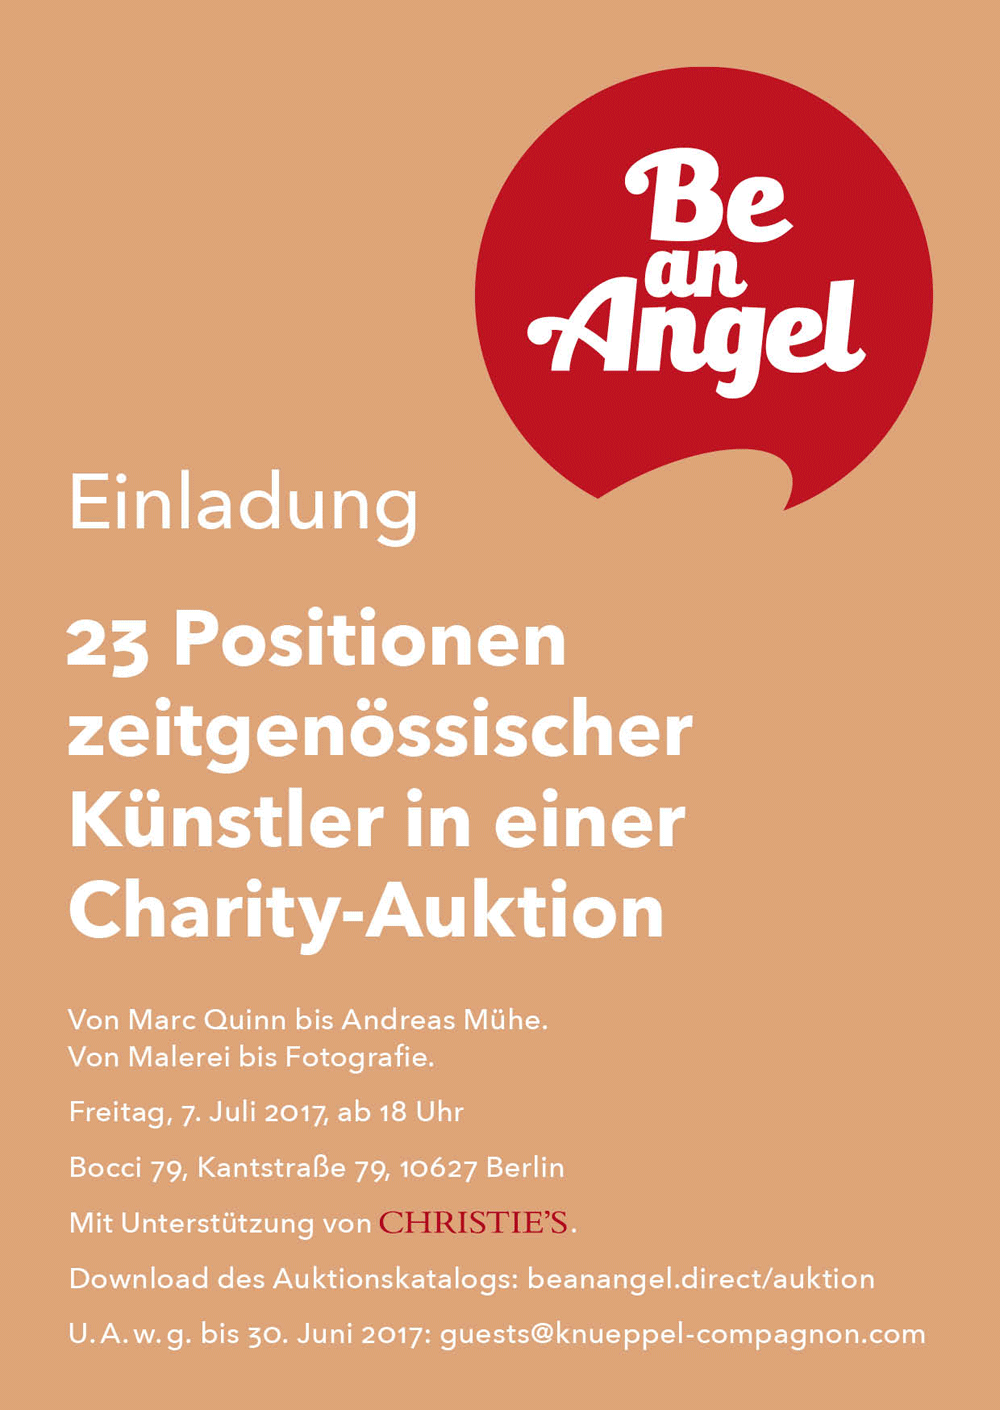 2017-07-02-be-an-angel_einladung.png